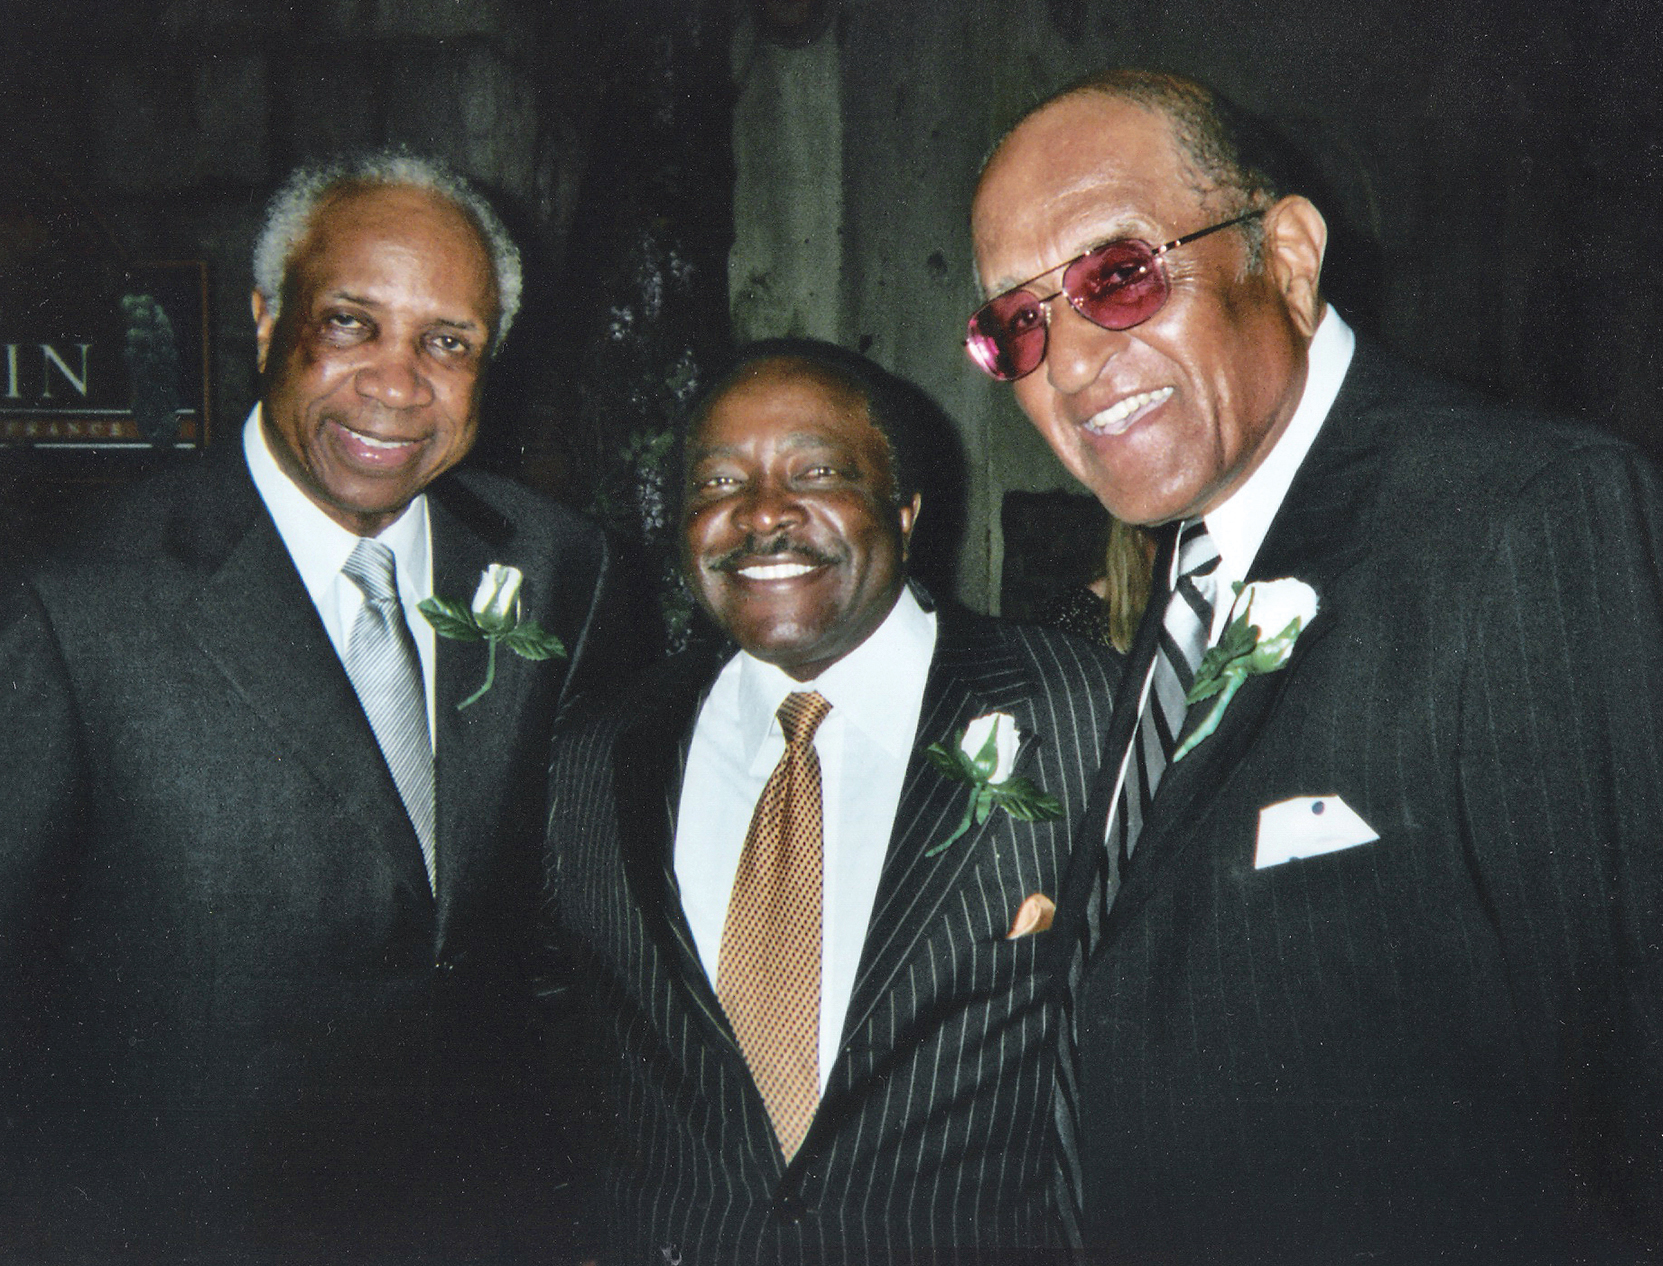 Frank Robinson (left) shares a moment with Joe Morgan (center) and Don Newcombe (right) at RBI dinner in Los Angeles.(Photo Credit Earl Heath)